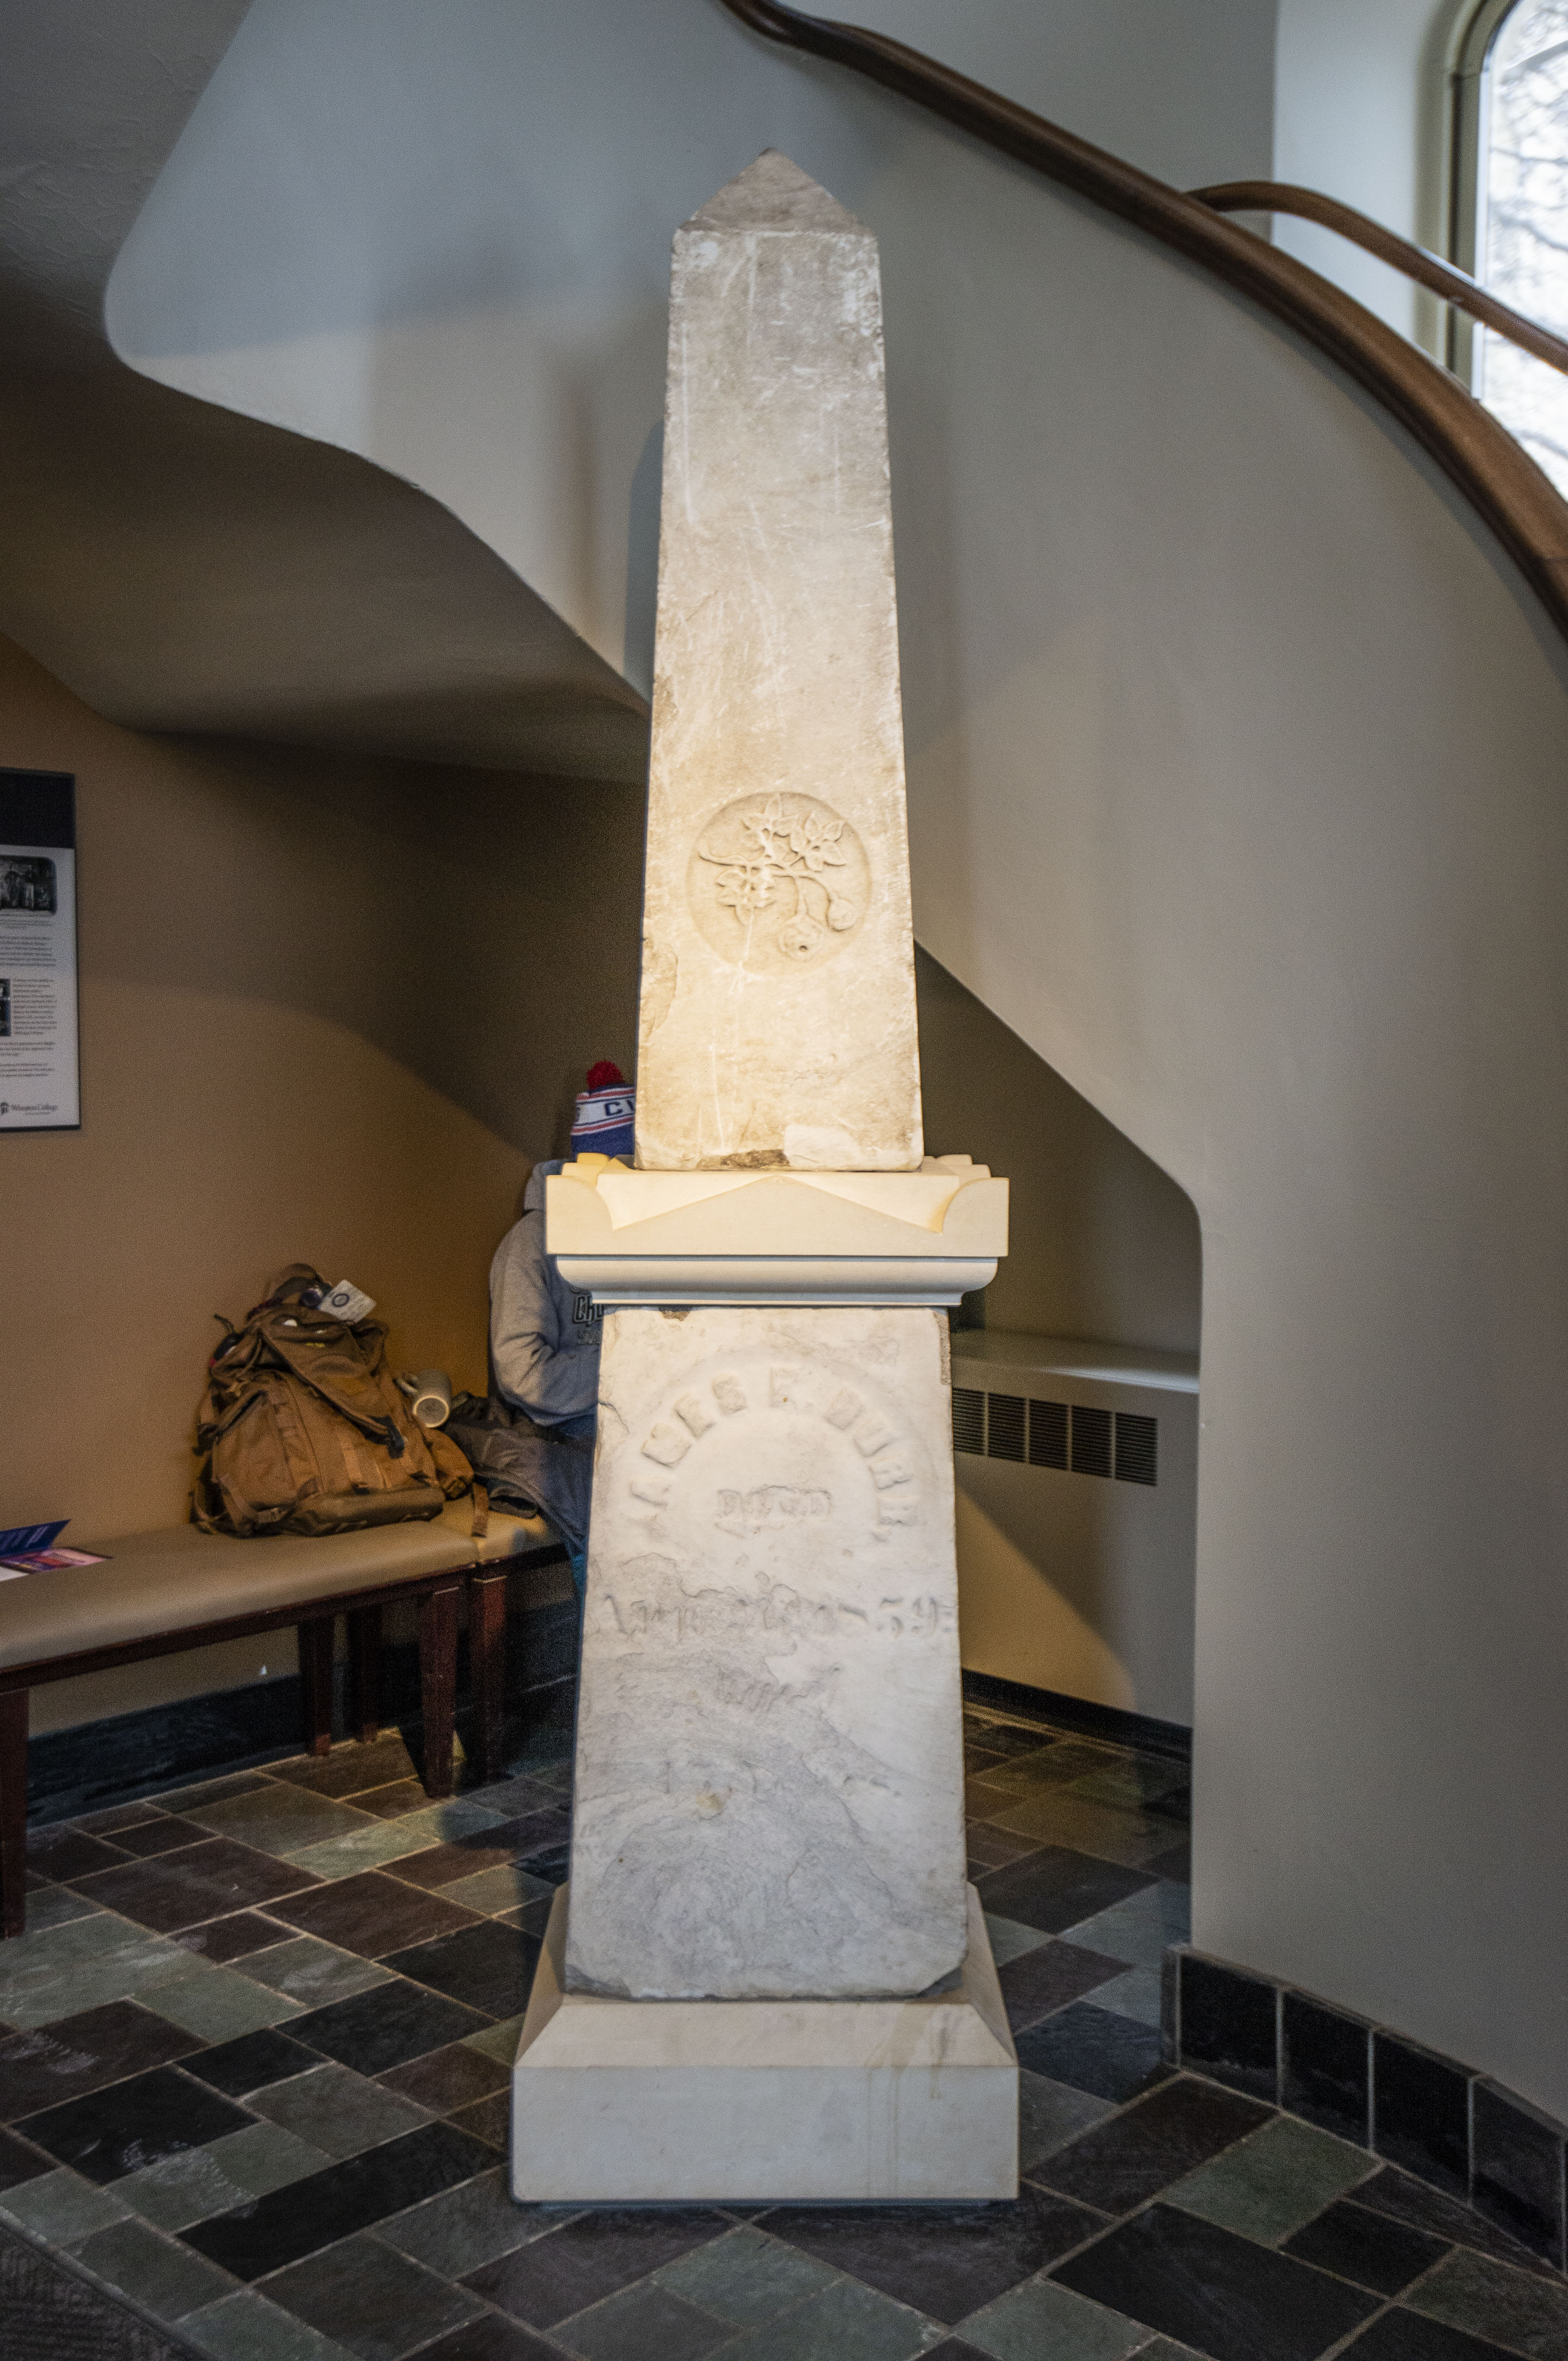 The James Burr obelisk in Blanchard Hall at Wheaton College on Feb. 11, 2019. Uncovered during recent excavations, it's a monument to the pre-Civil War abolitionist convicted and sentenced to hard labor in Missouri for helping to free slaves. (Jason Marck/WBEZ)